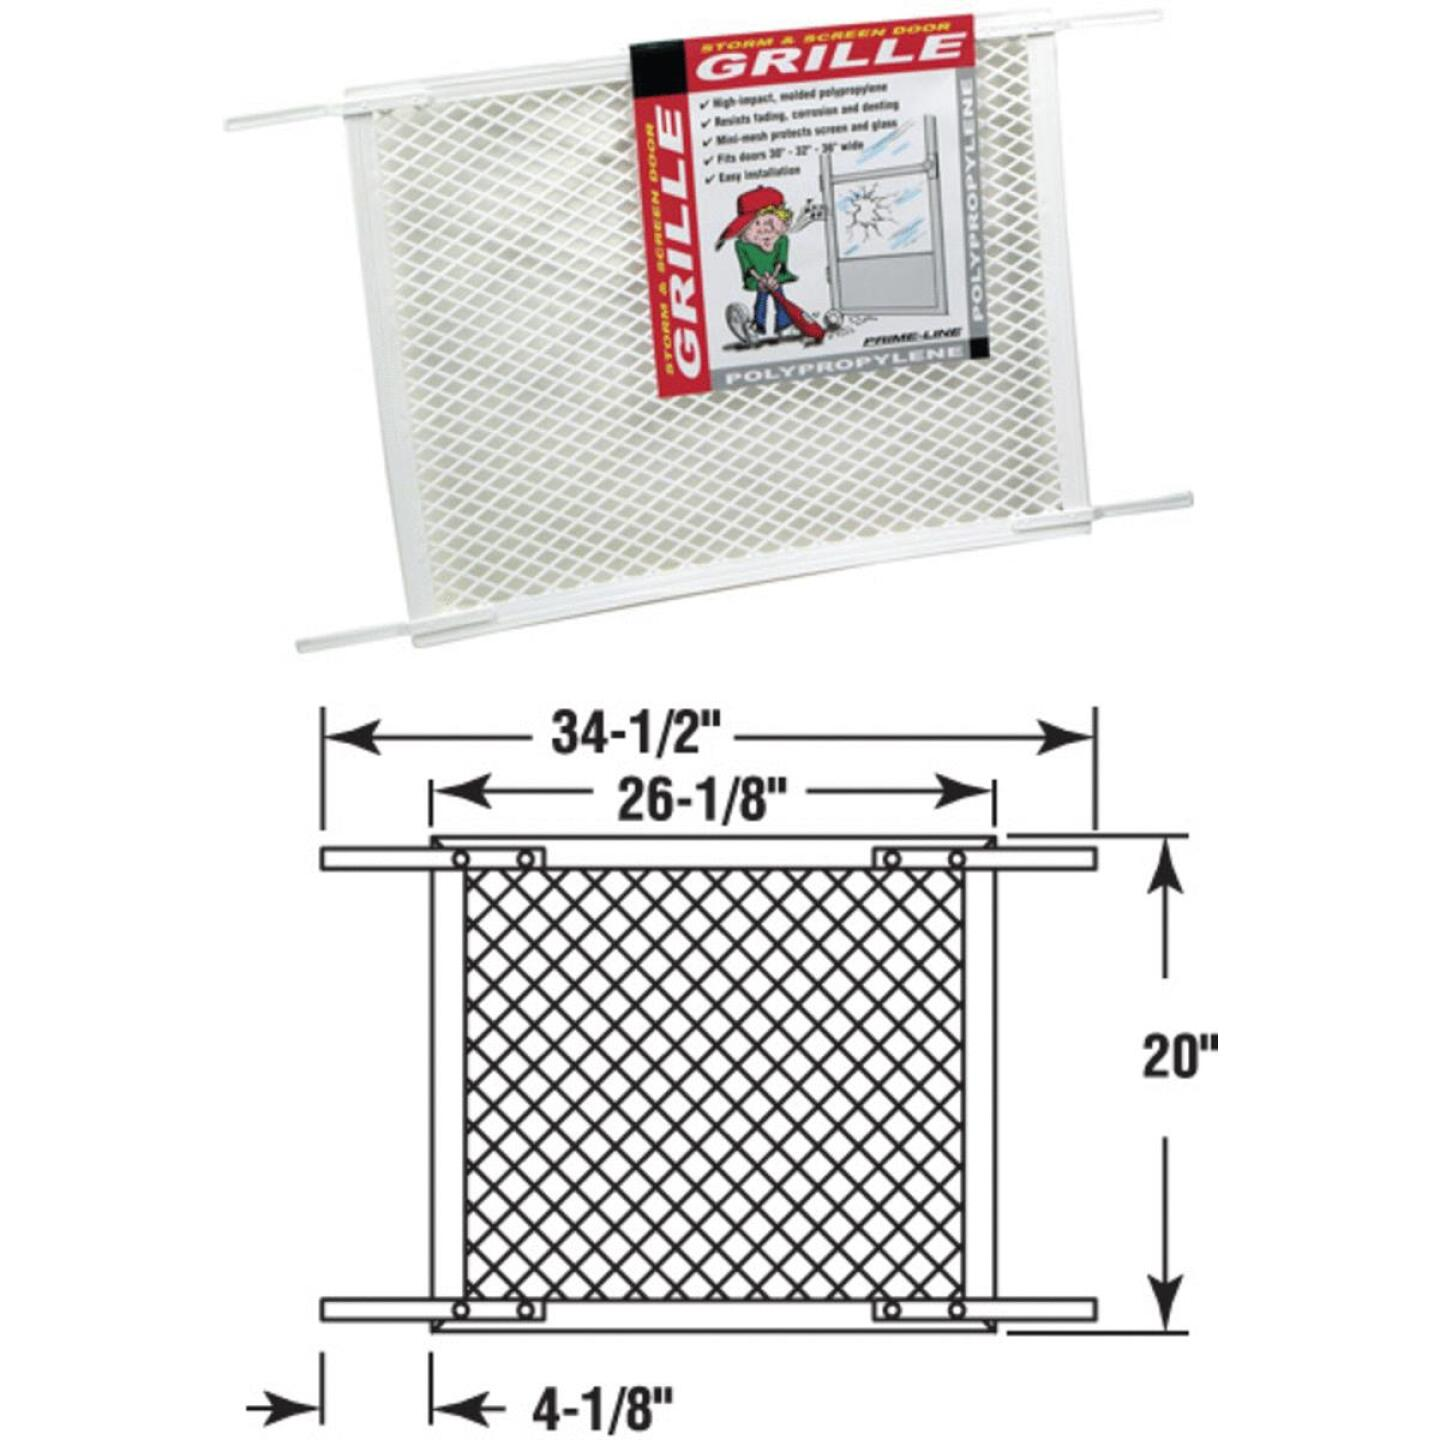 Prime-Line Make-2-Fit 20 In. x 36 In. White Plastic Door Grille Image 1